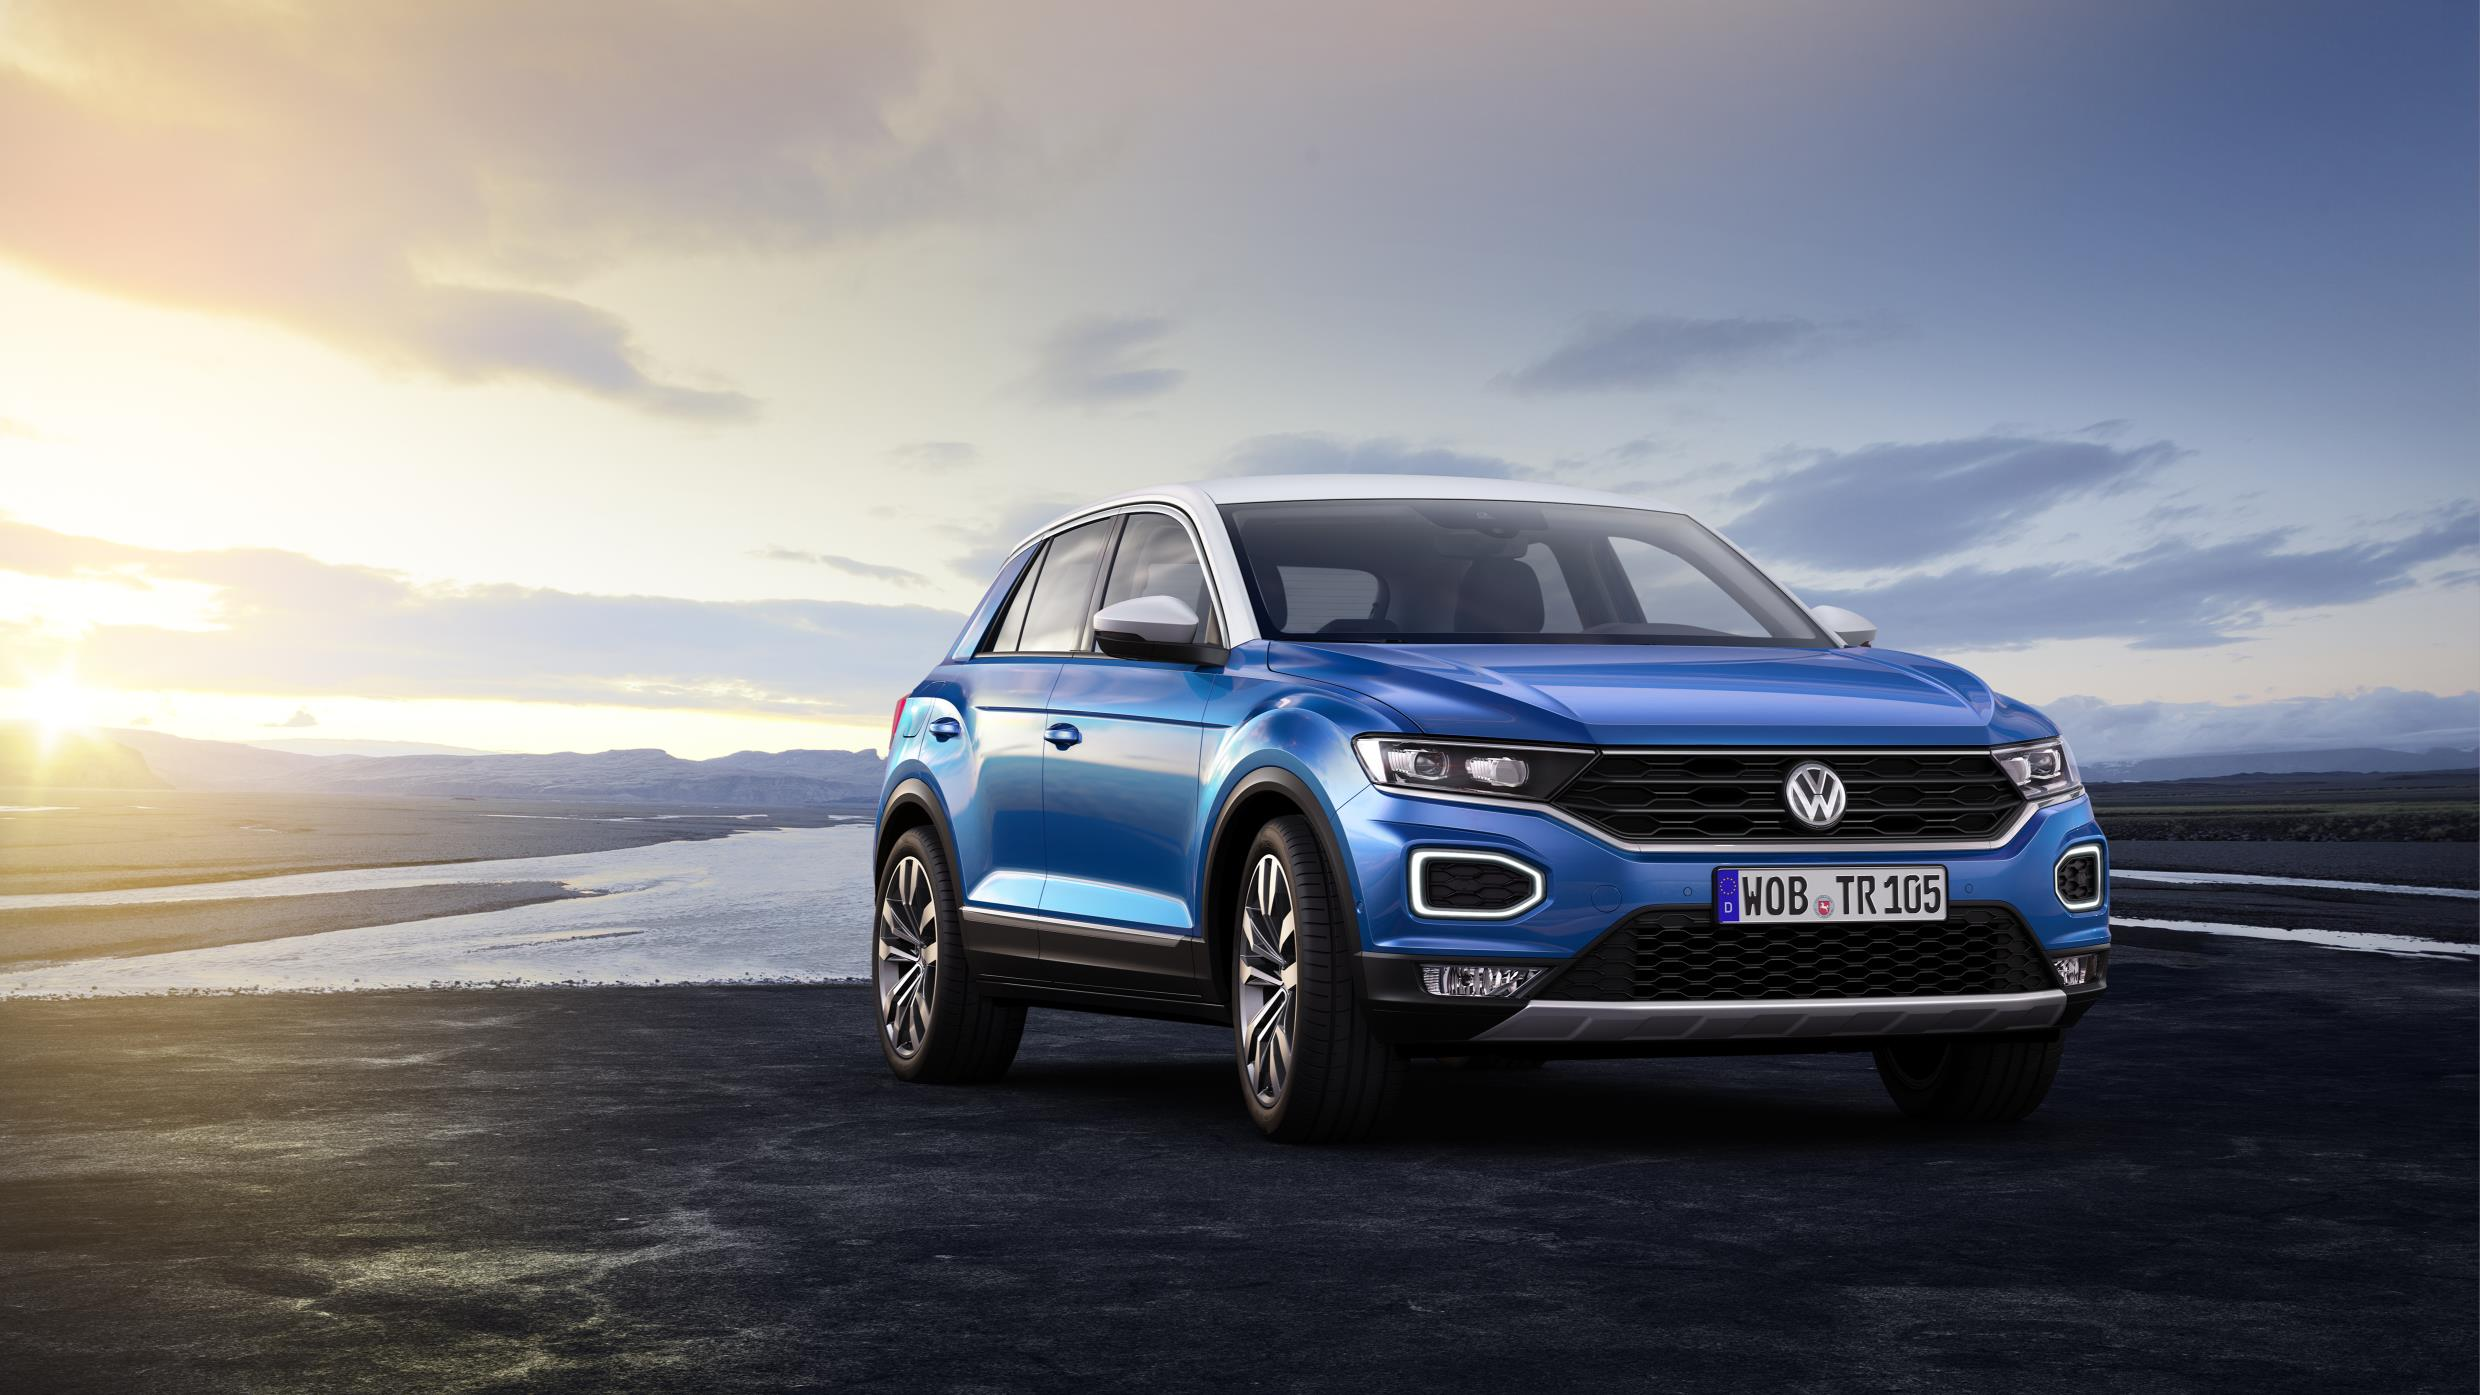 Roc world premiere highlights VW's fourth SUV, and it looks good